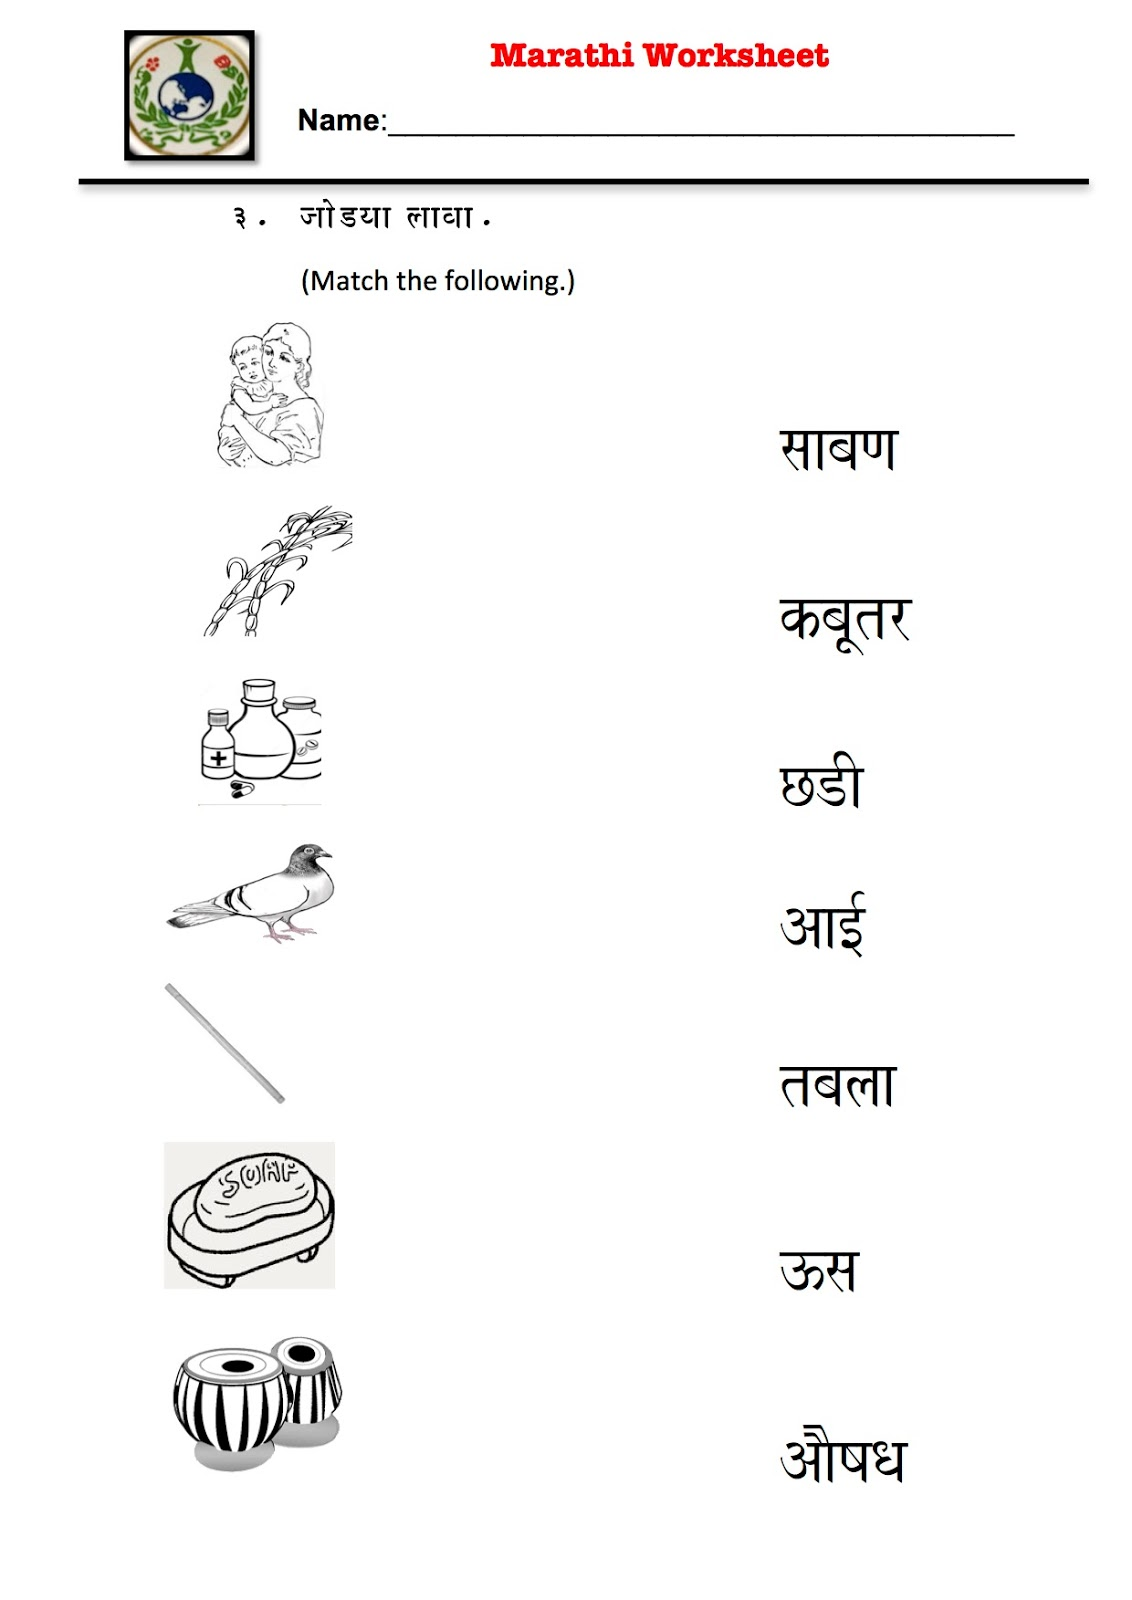 Marathi Worksheets